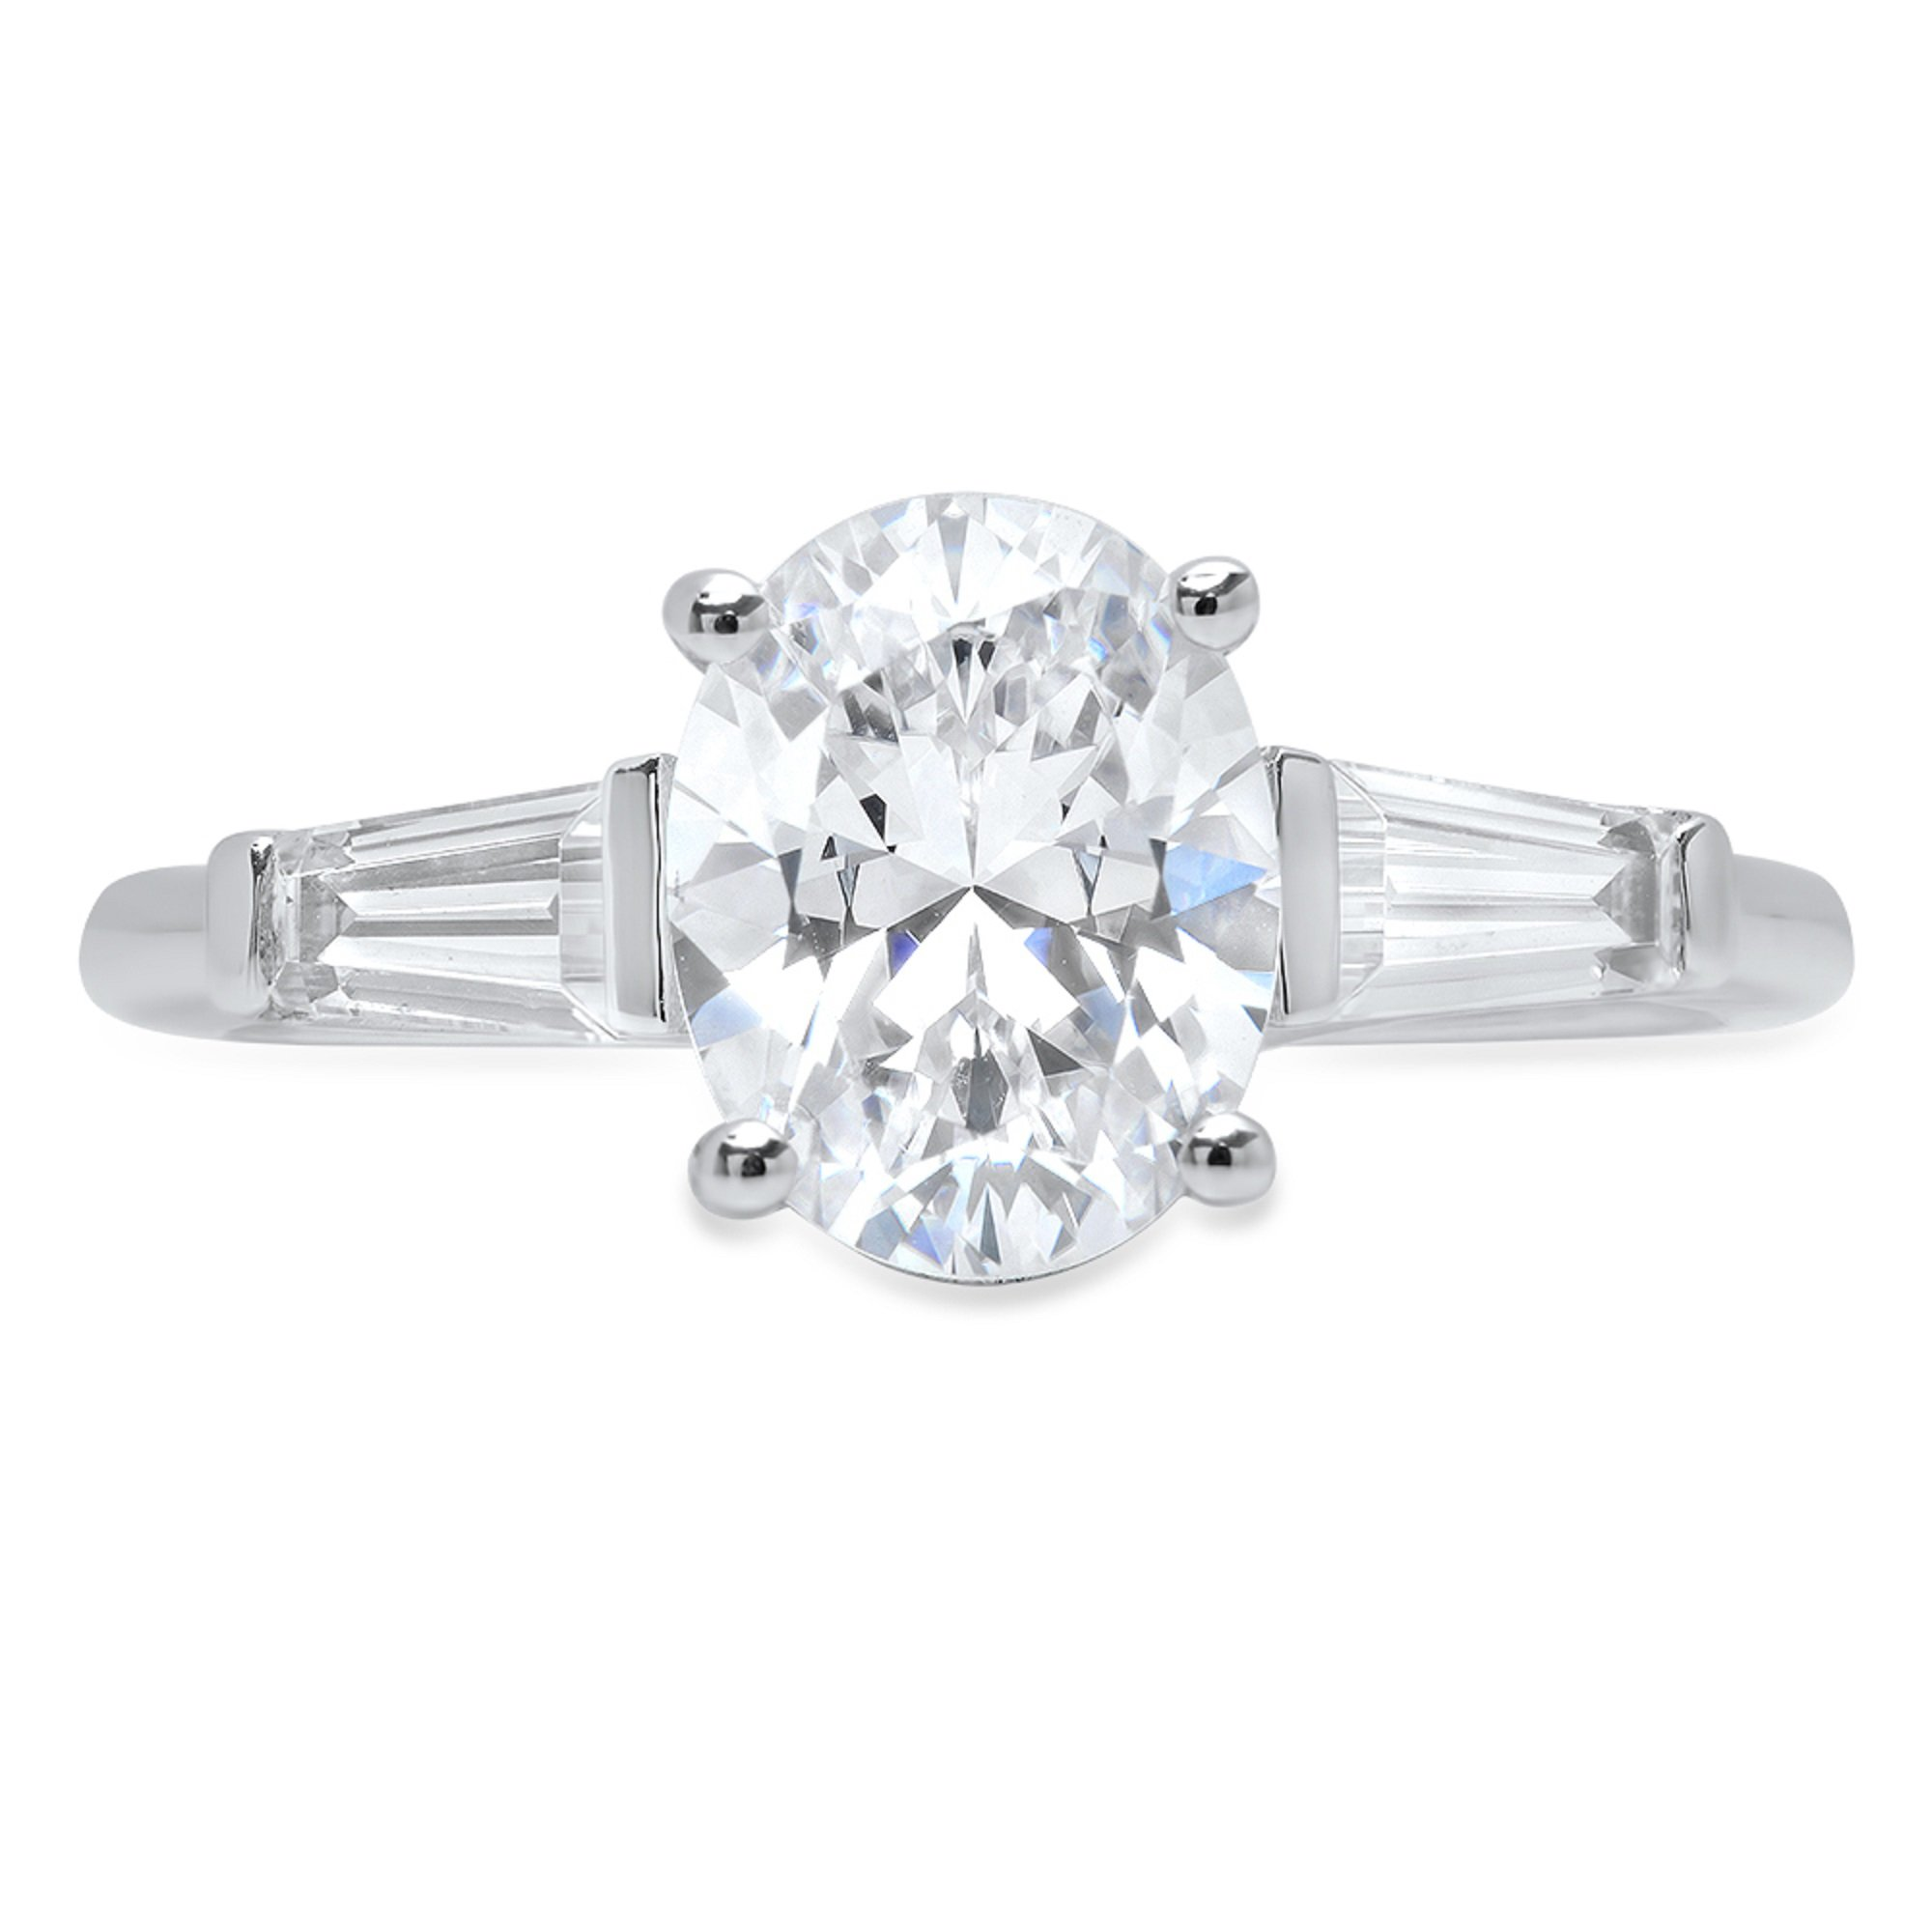 2.1ct Brilliant Oval Baguette Cut Solitaire 3-Stone Statement Ring 14k Solid White Gold, 6.25